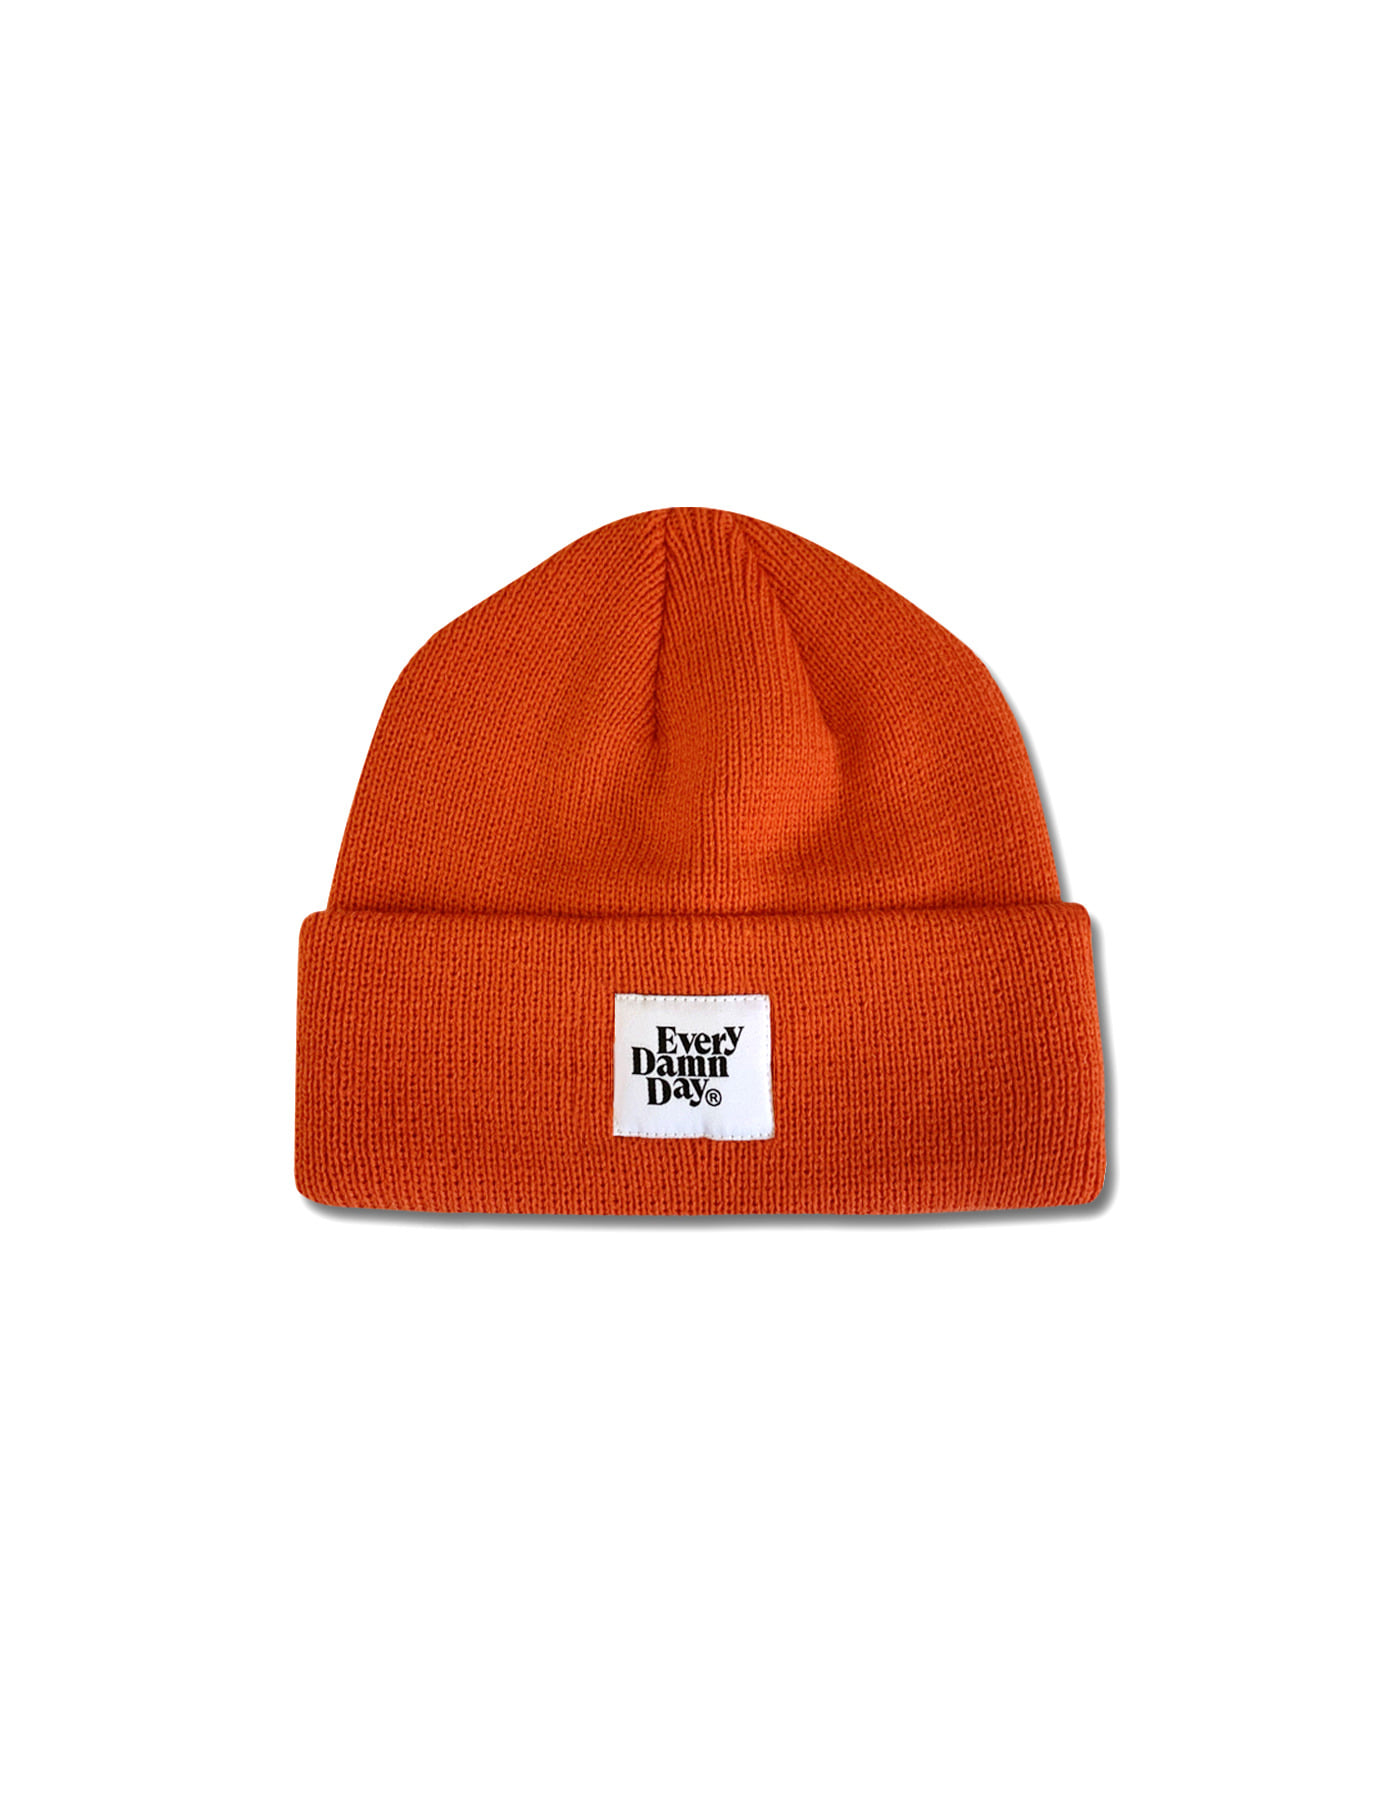 Every Damn Day Beanie - Orange